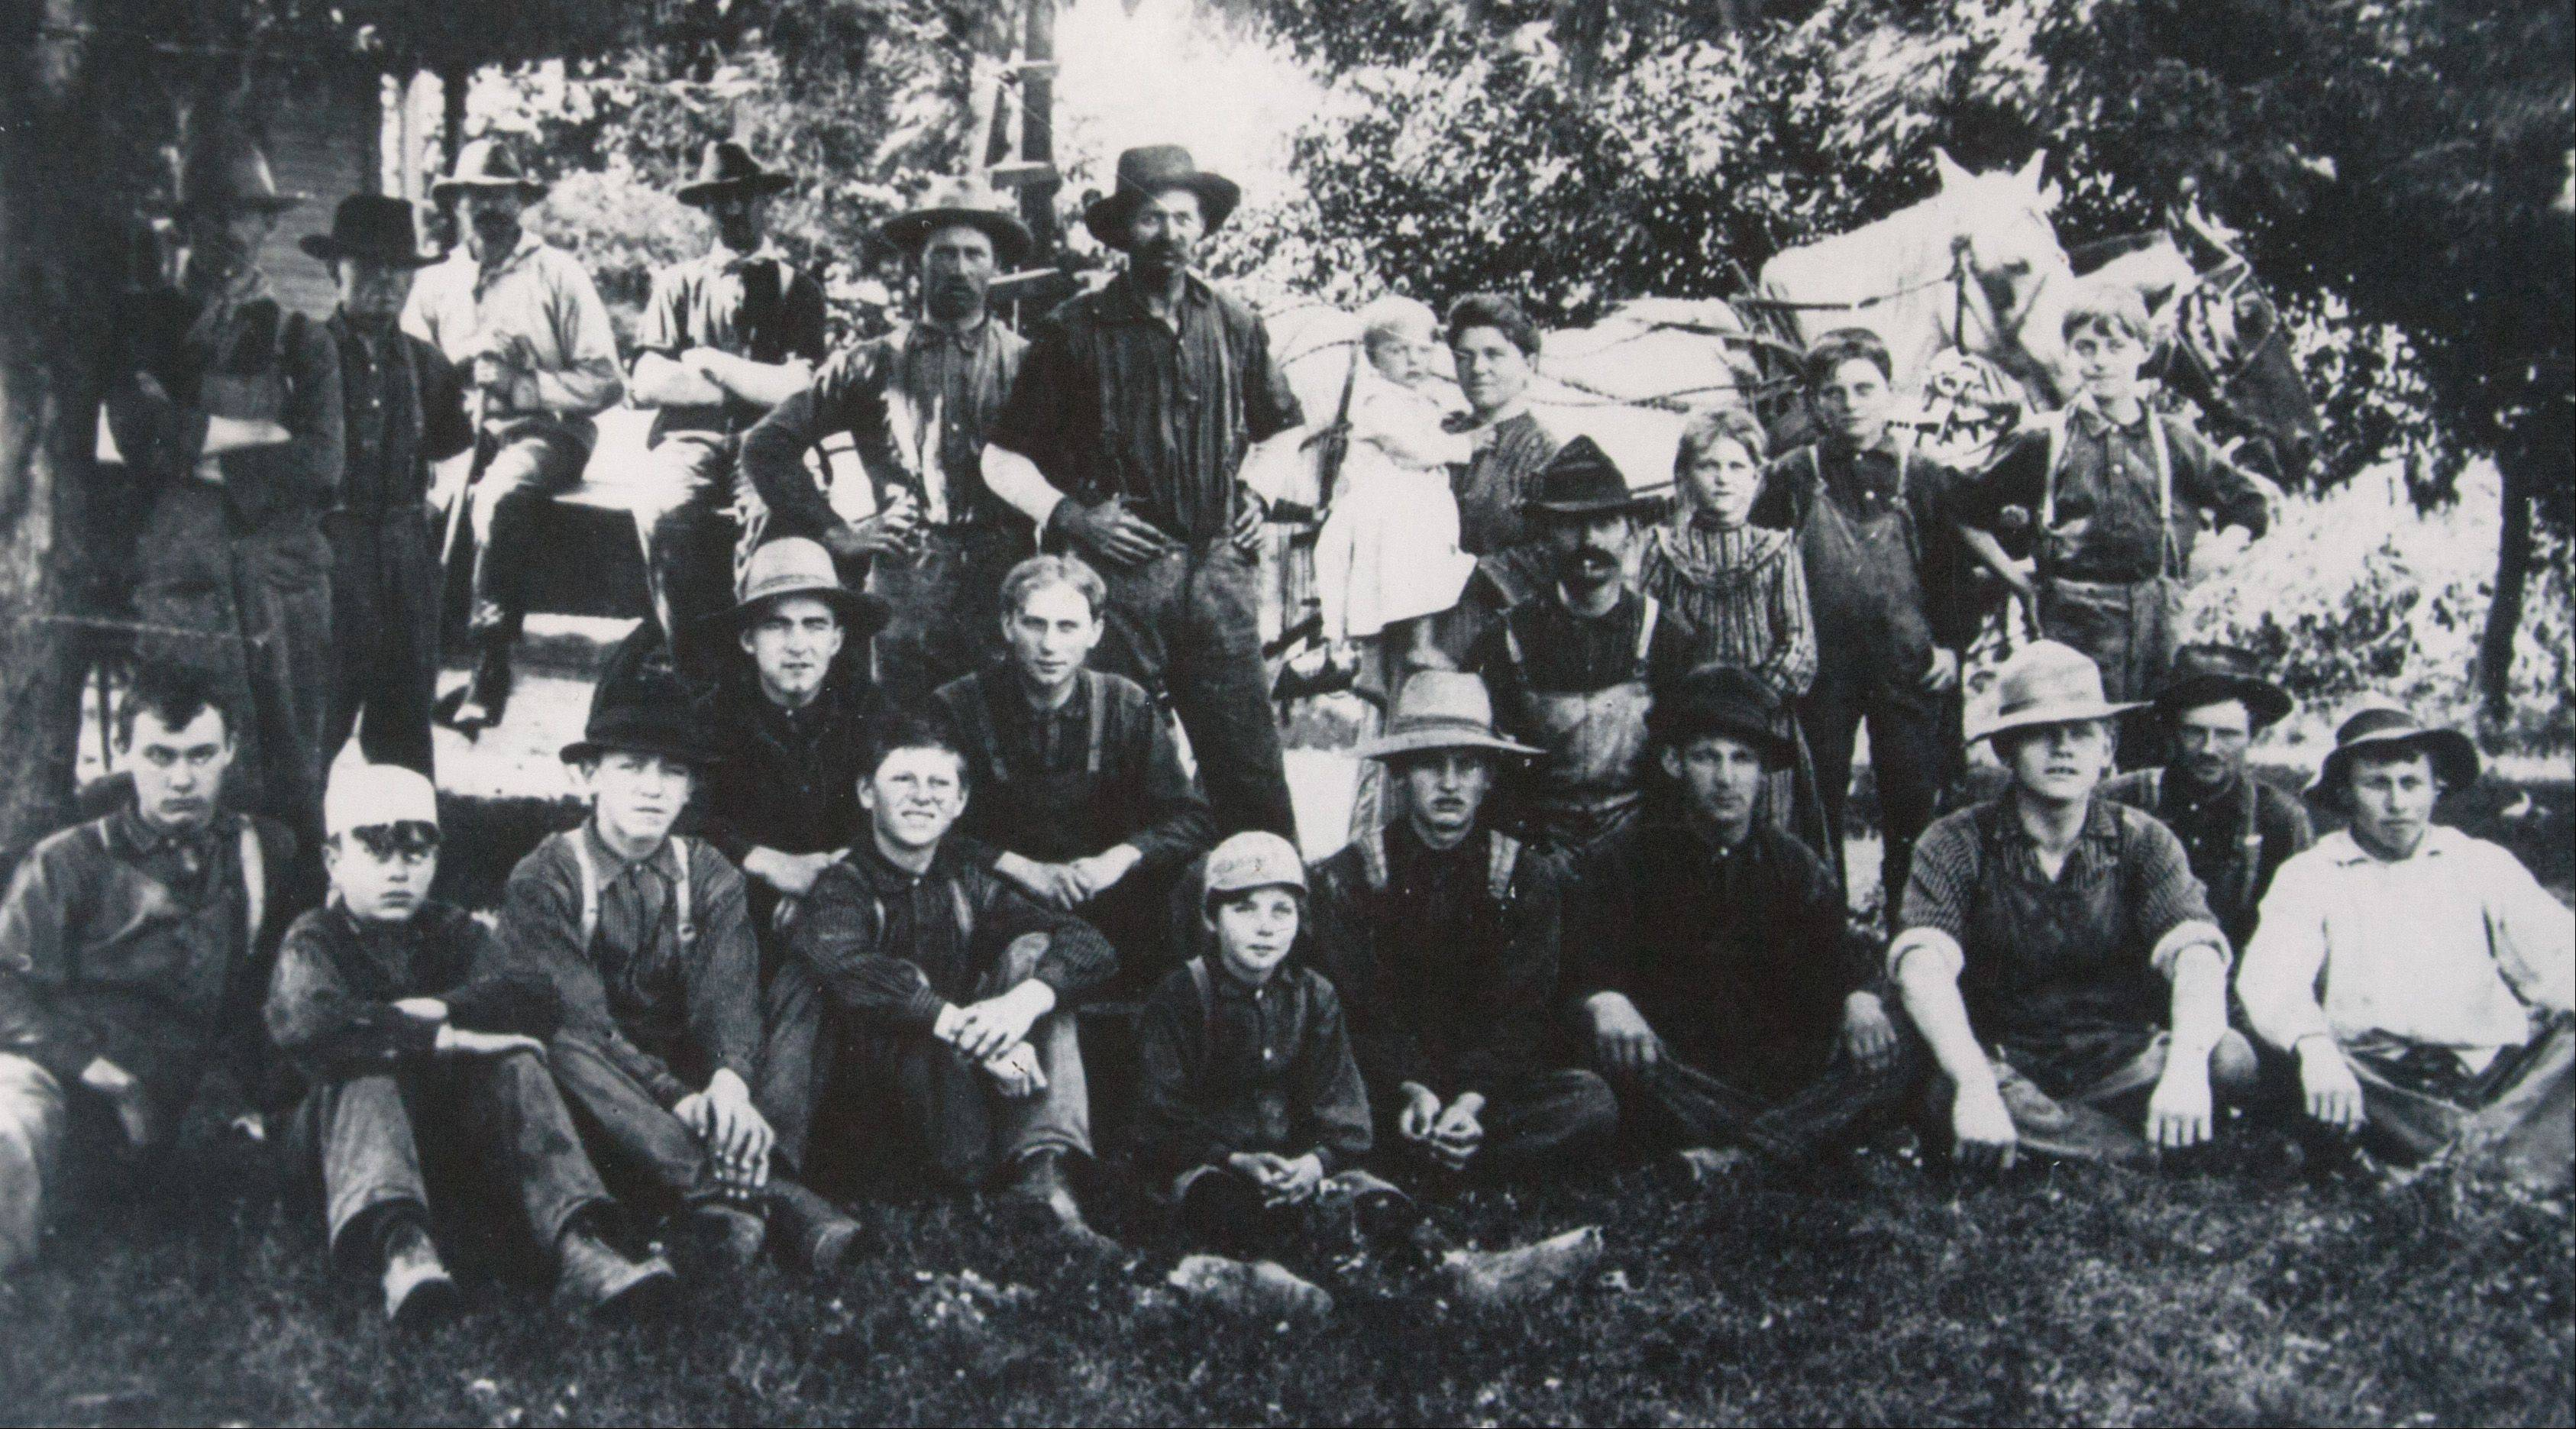 This photo of the threshing crew on Brinkmann farm in 1904 was sent by Fritz Brinkmann's grandson who now lives in Wisconsin. The farmhouse stood at the site of the current Oakbrook Terrace city hall.